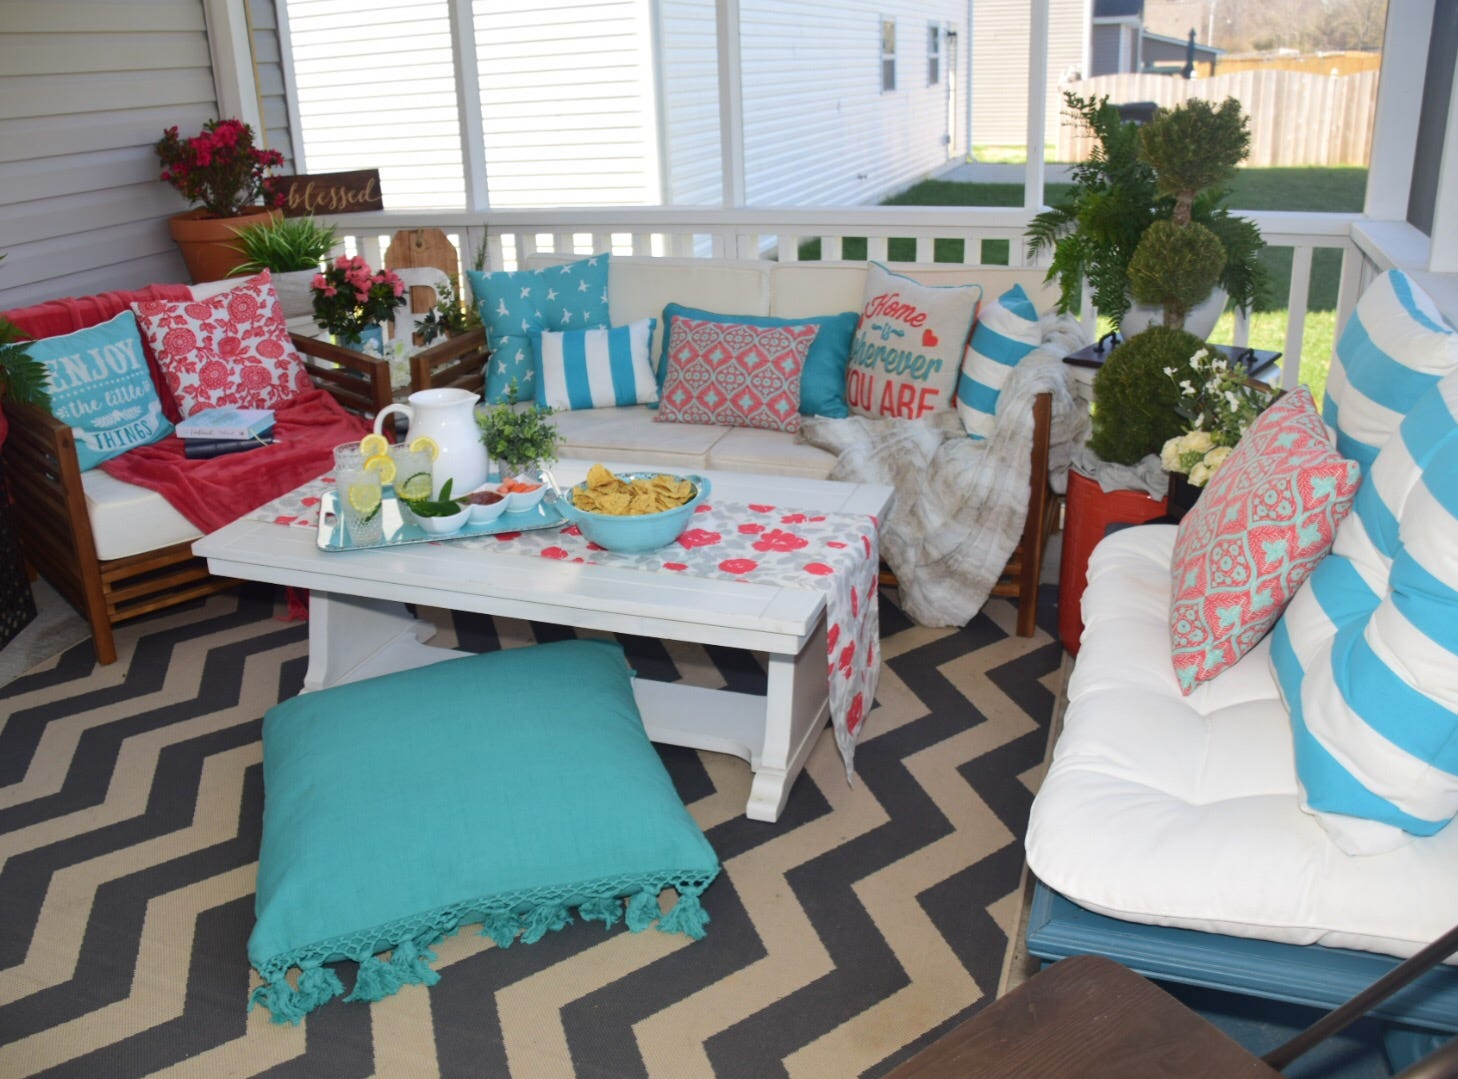 Kelly Reynolds pulled the look together at her house in Karns with brightly colored pillows in various but matching colors.